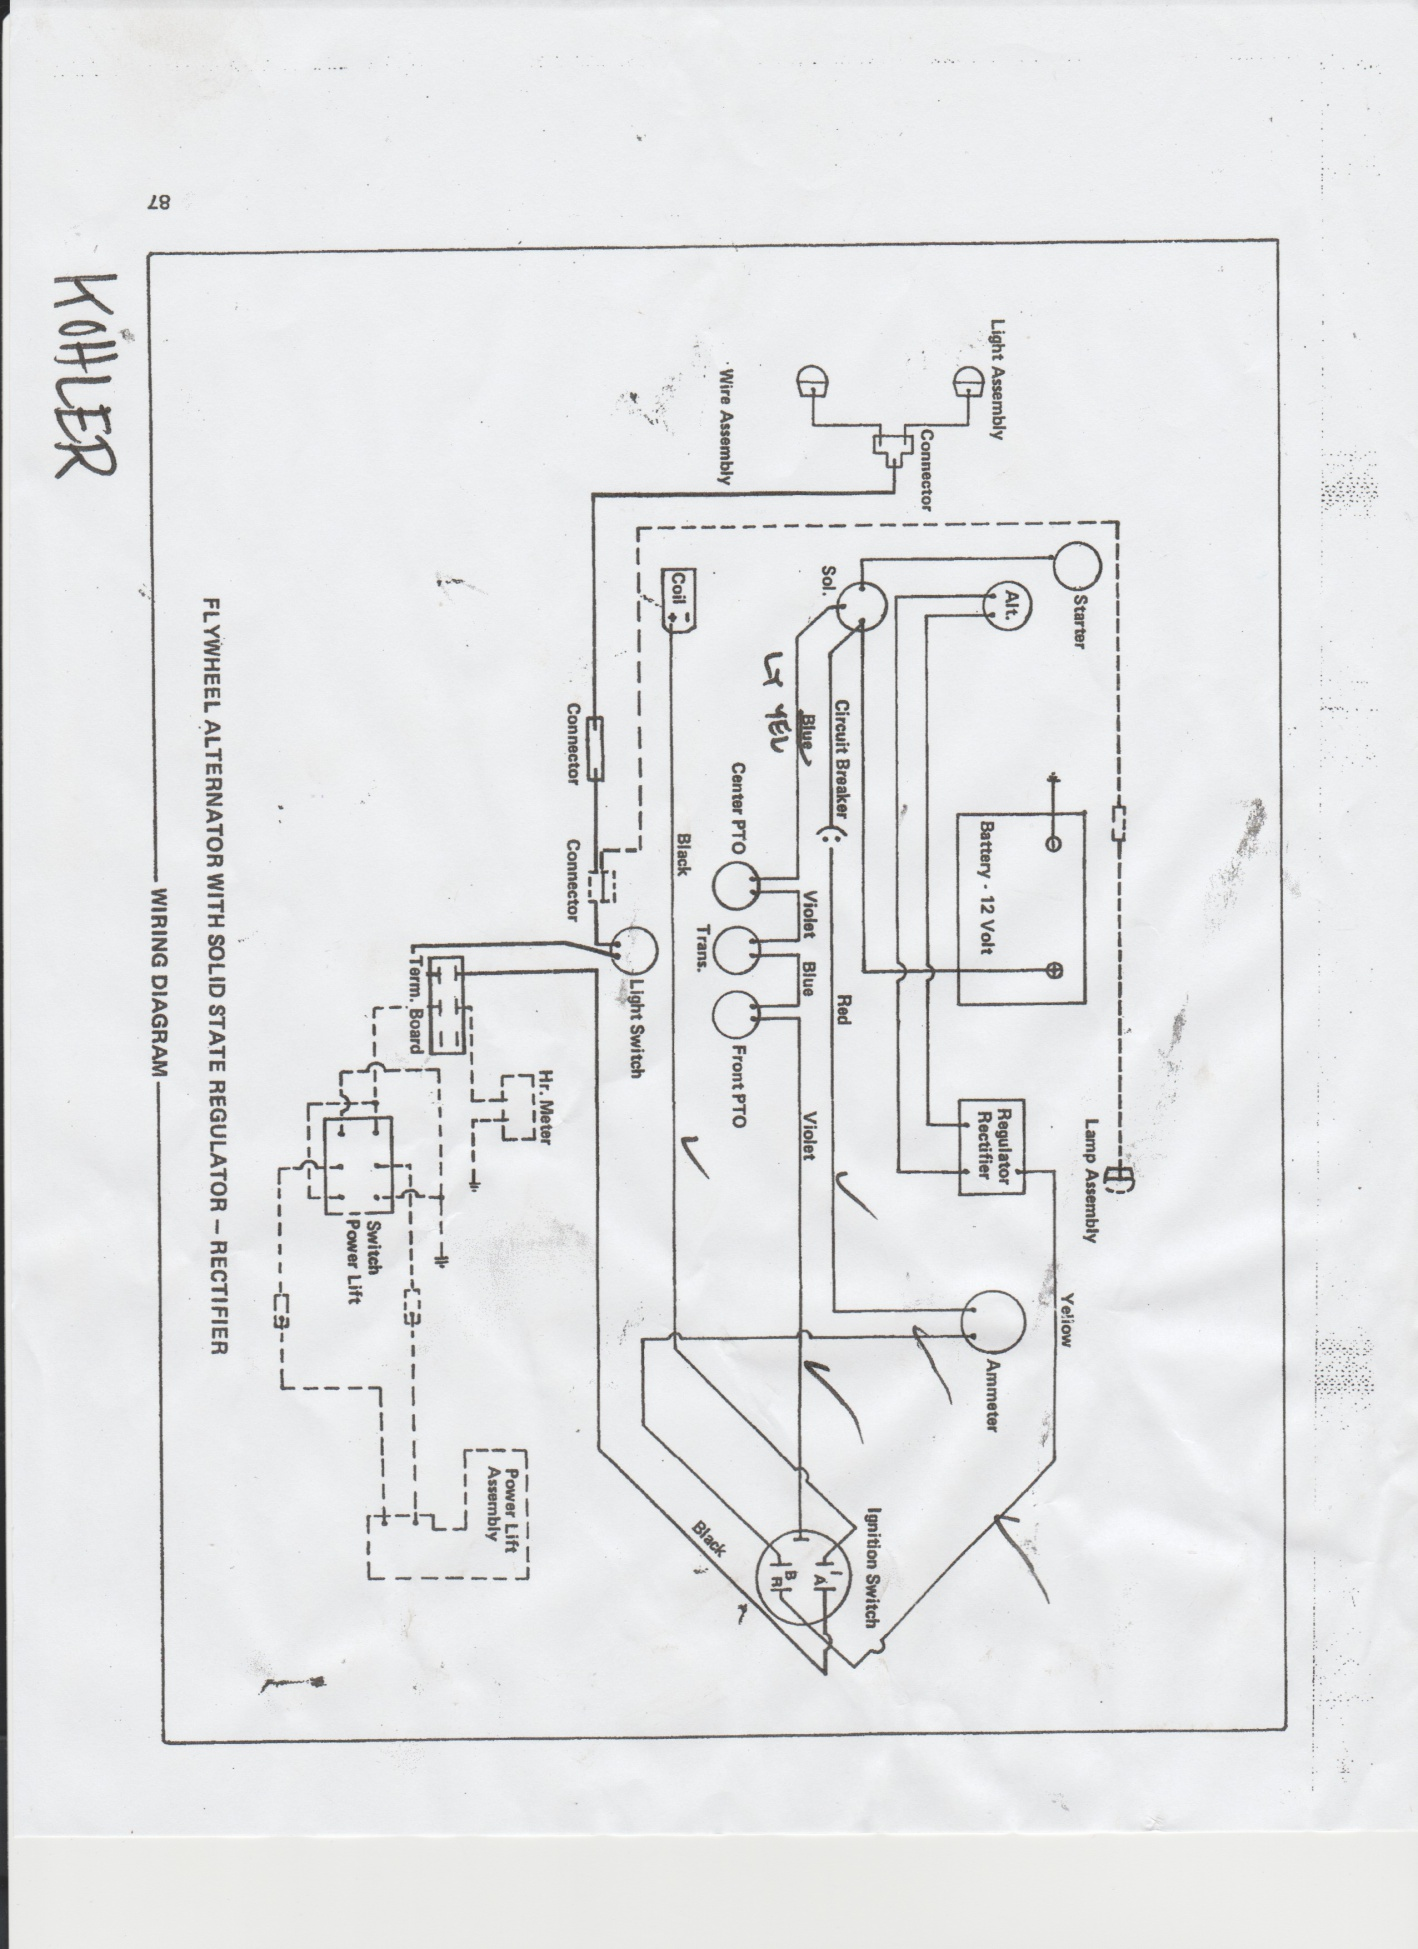 Wiring diagram for Allis 710 (simplicity 7010) - MyTractorForum.com on